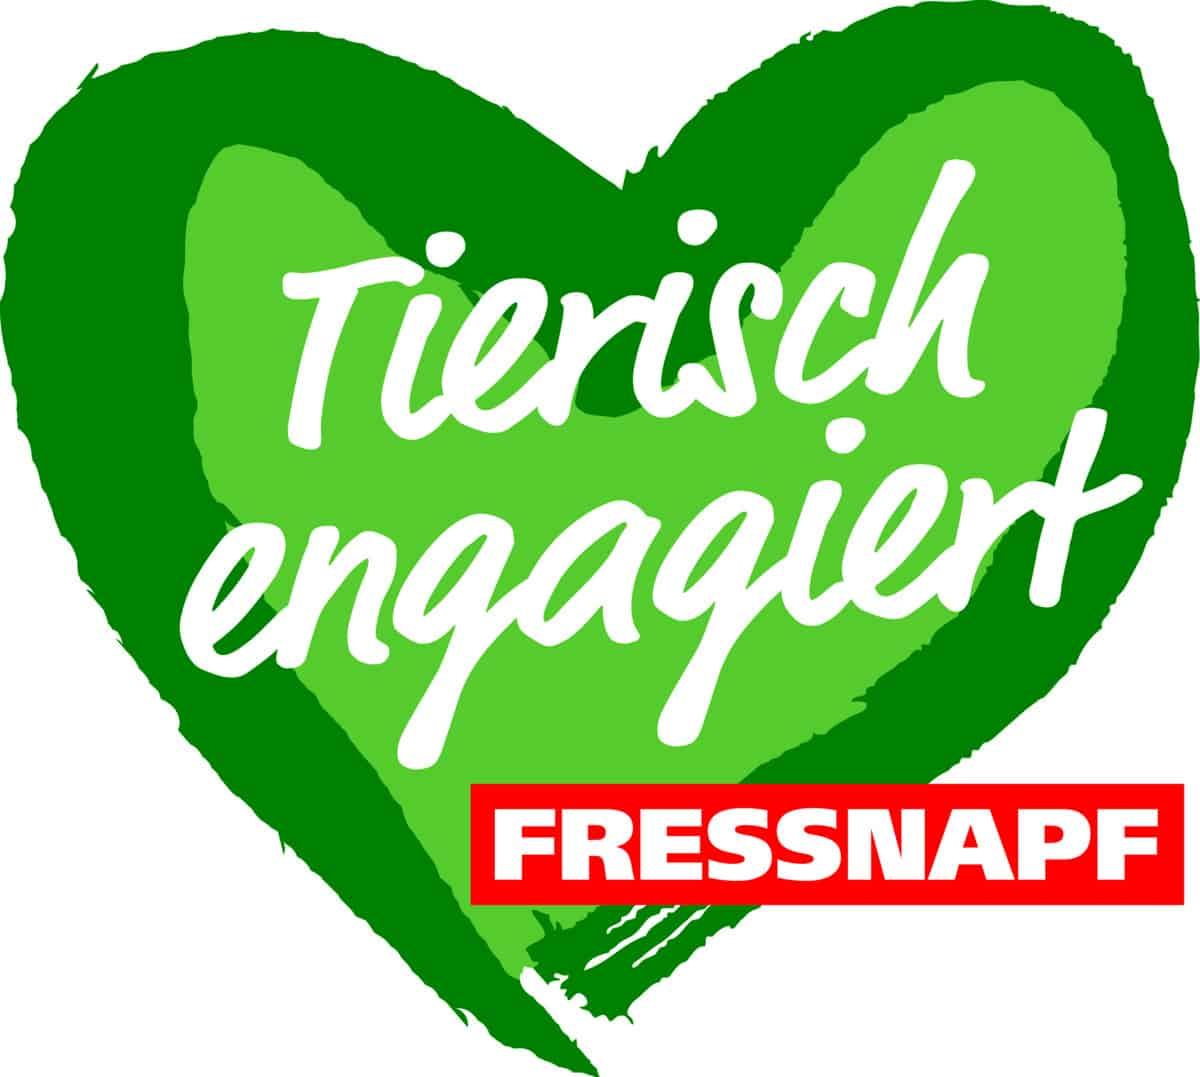 Logo Tierisch Engagiert by Fressnapf Germany :: On green heart the words Tierisch Engagiert. Bottom right in red box the word Fressnapf.